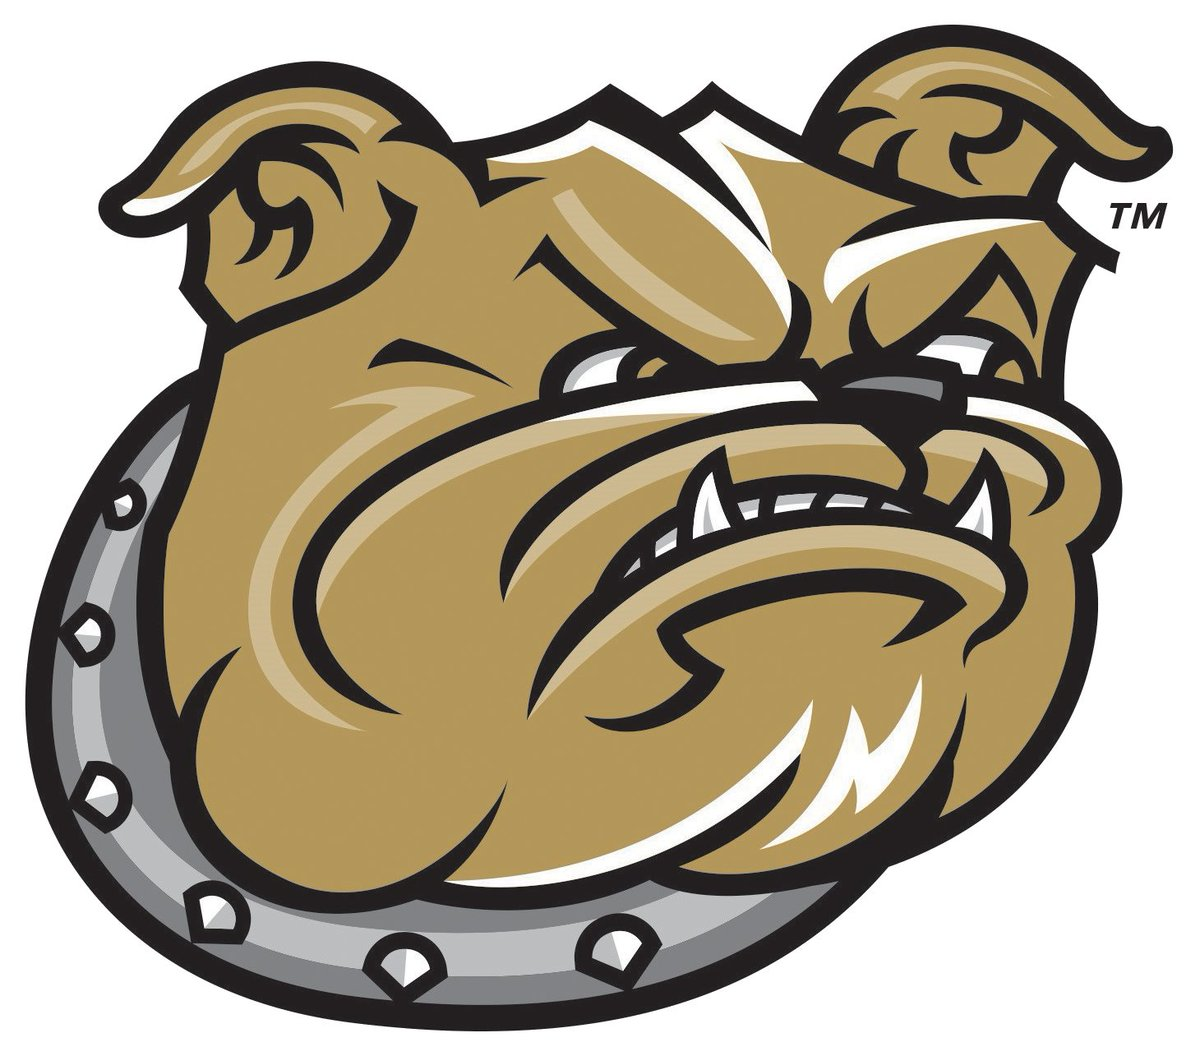 Who's the first Bryant student-athlete you think of when you see this logo?  #WeAreBryant https://t.co/Hi0AxJIaU4